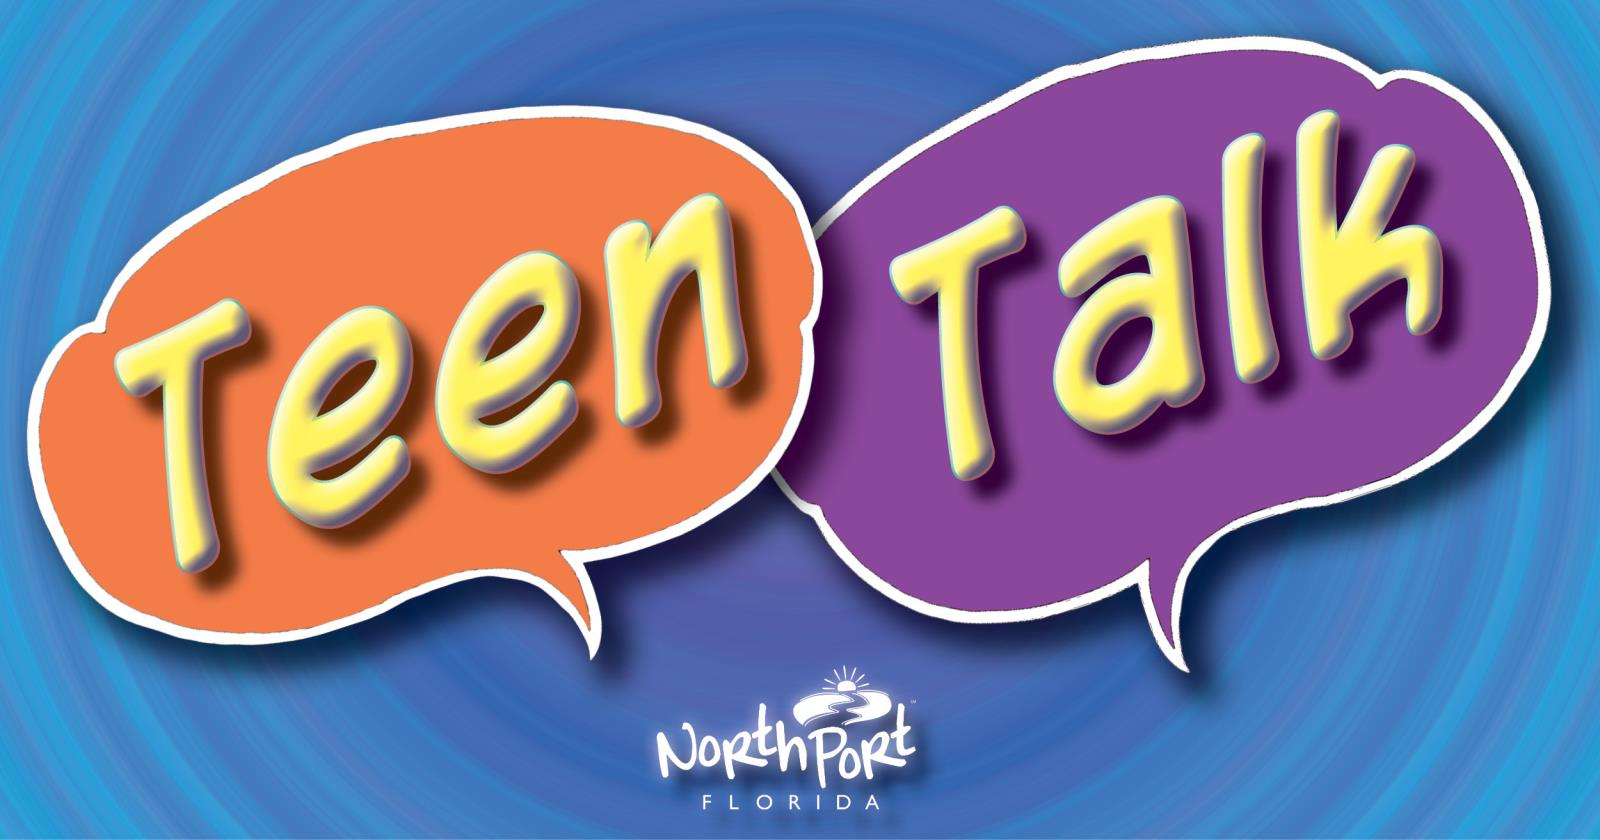 Teen Talk illustration with two talk bubbles and the words Teen Talk